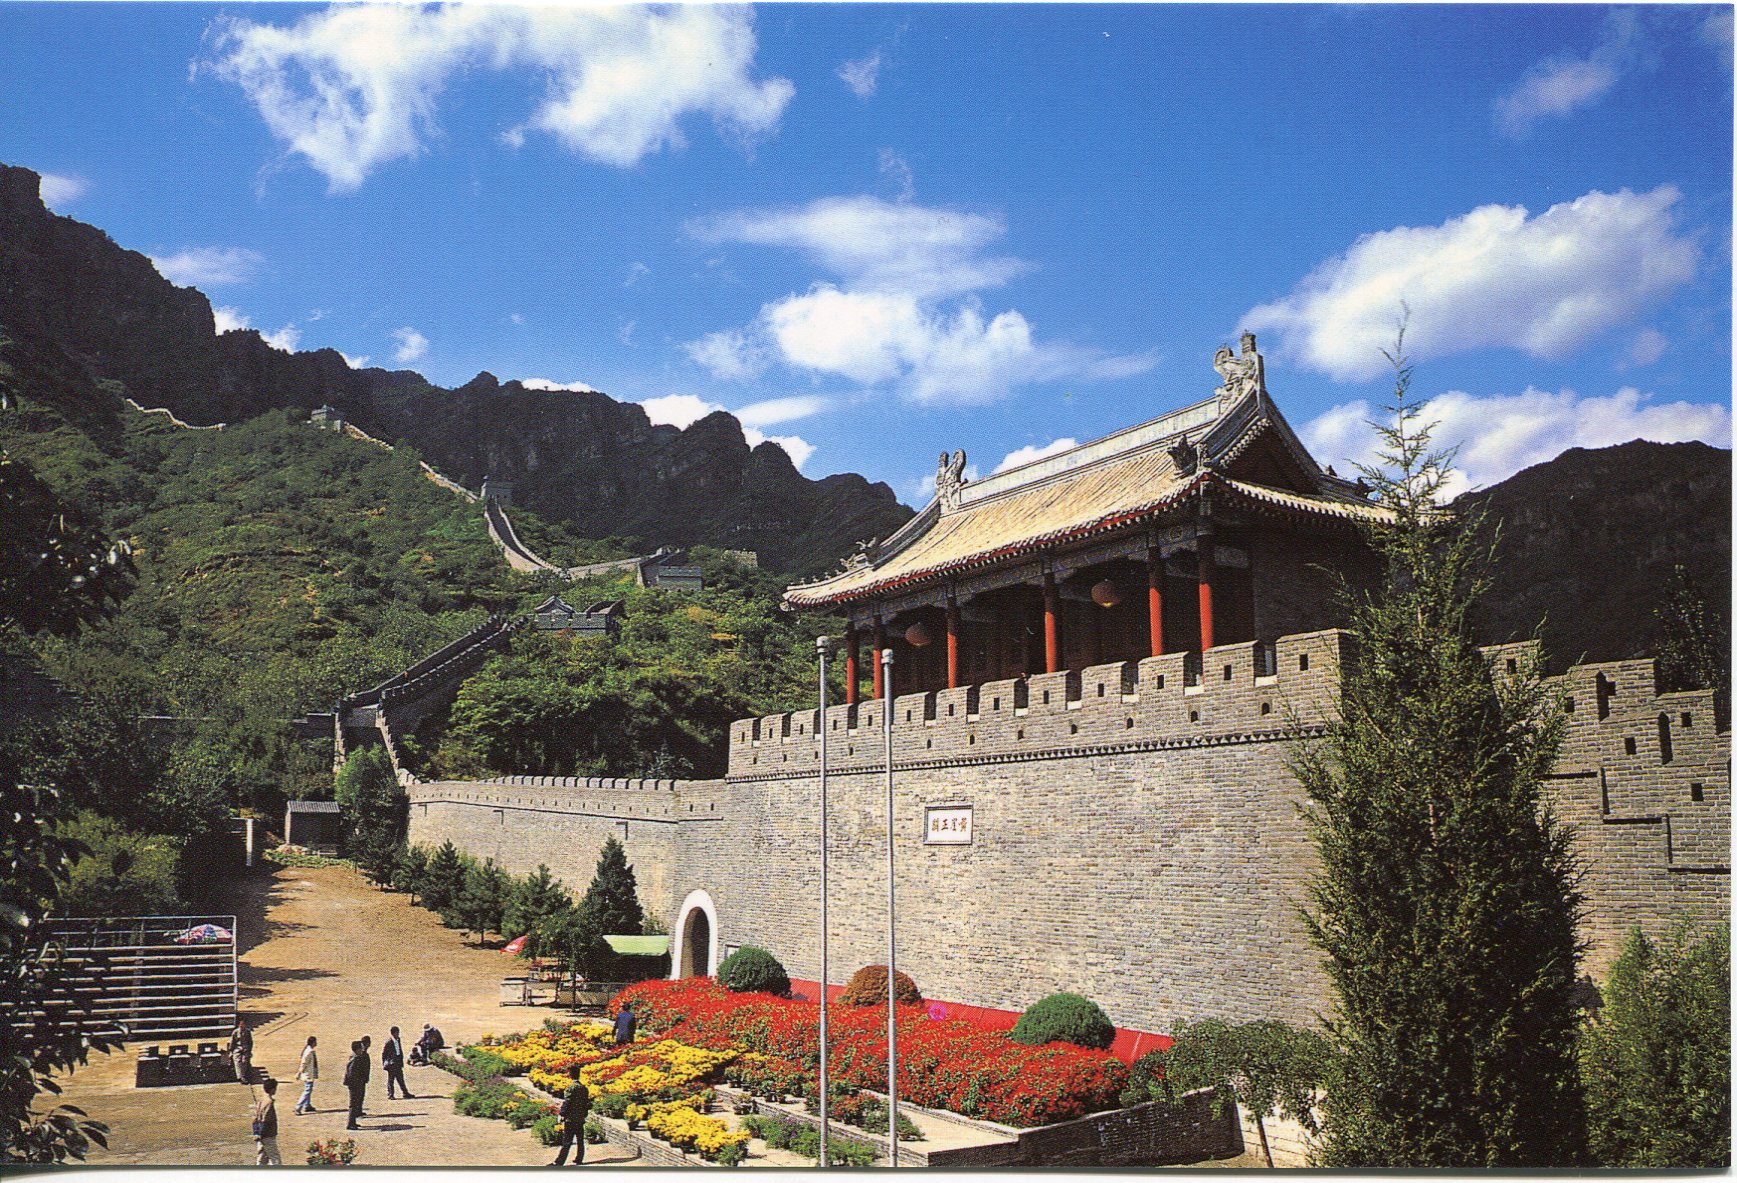 essay great wall of china The great wall of china research paper introduction the great wall of china is one of the greatest historical monuments that people inherited from the ancient epoch.